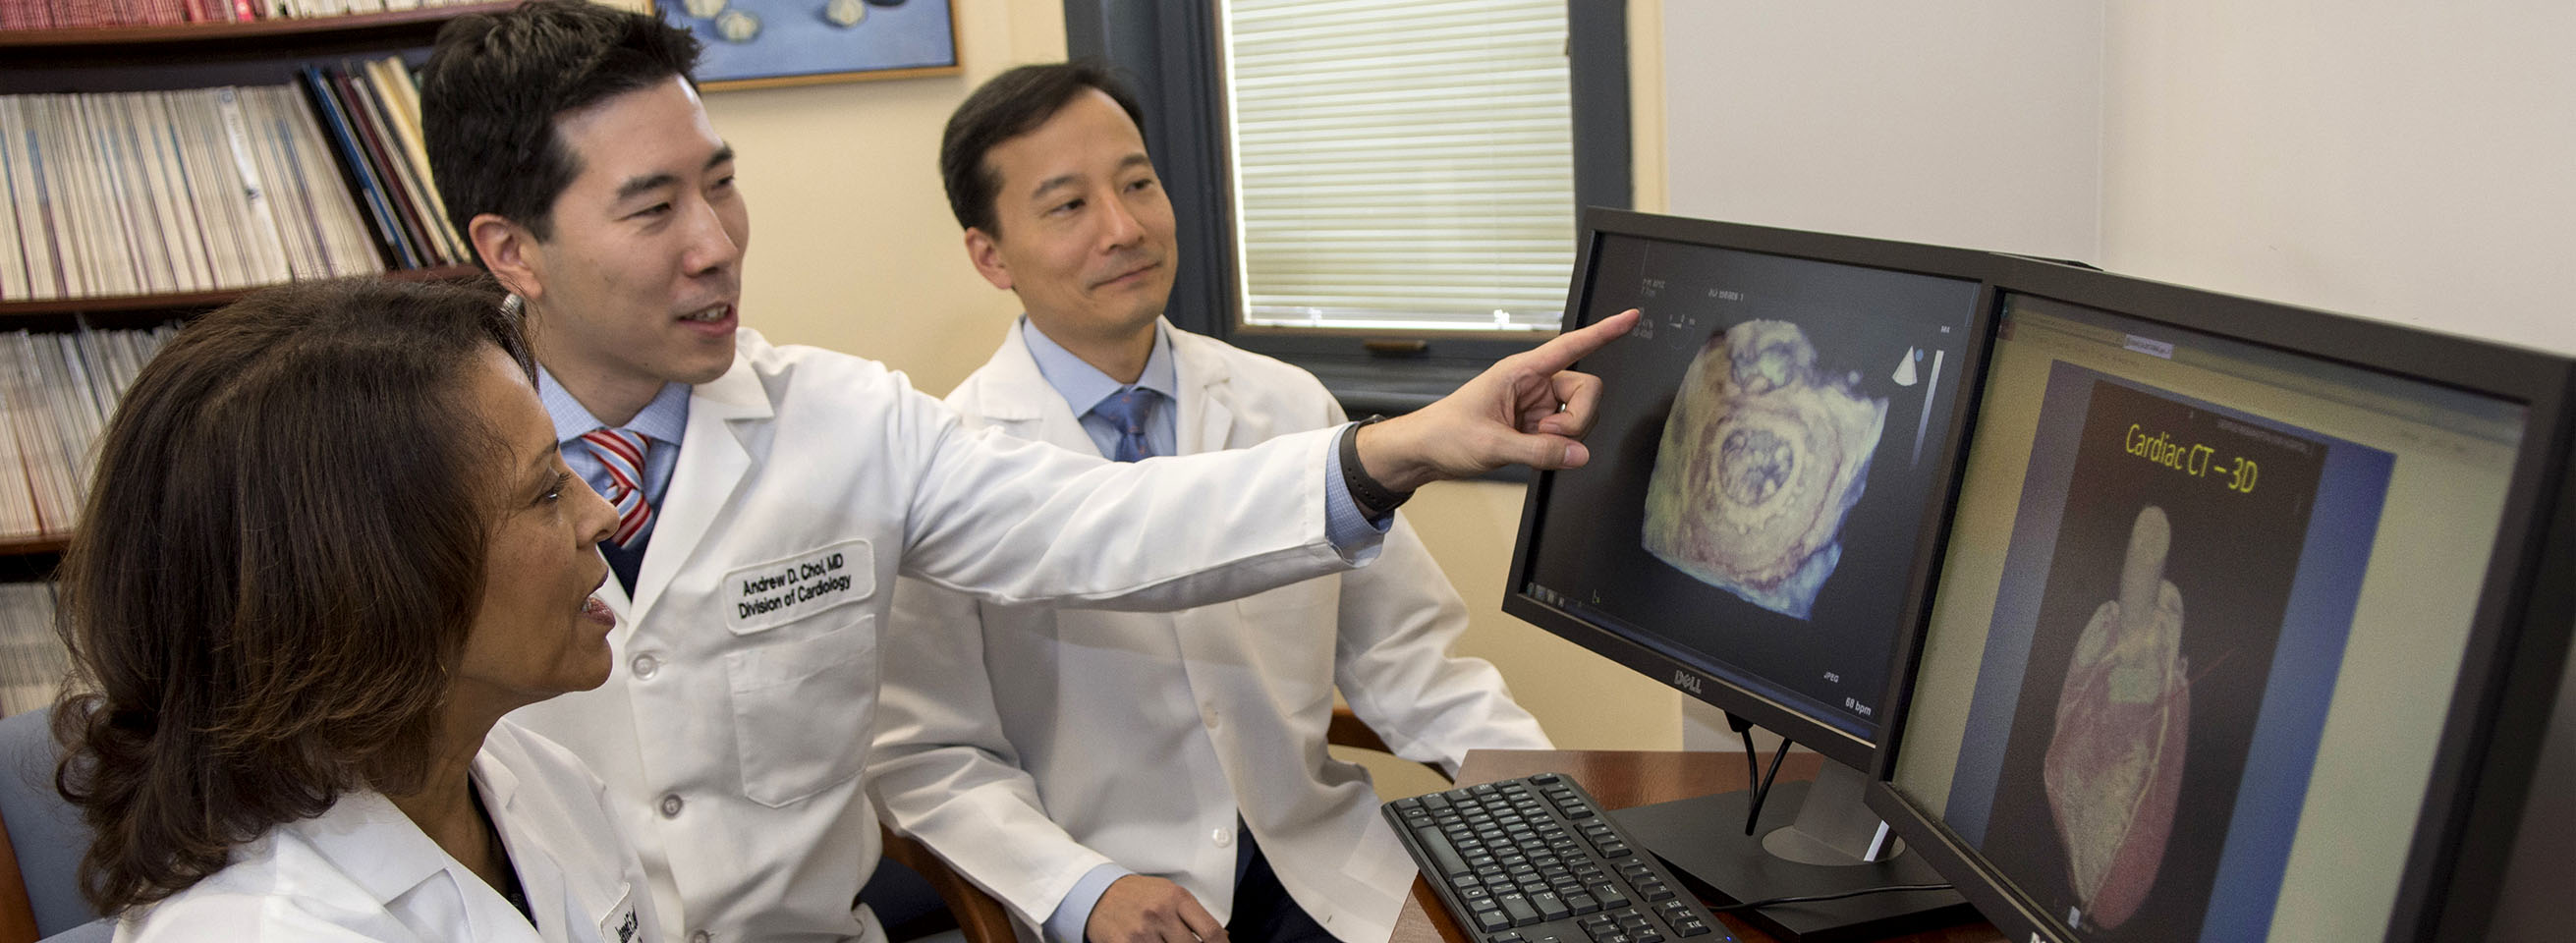 Cardiologists studying CT scan